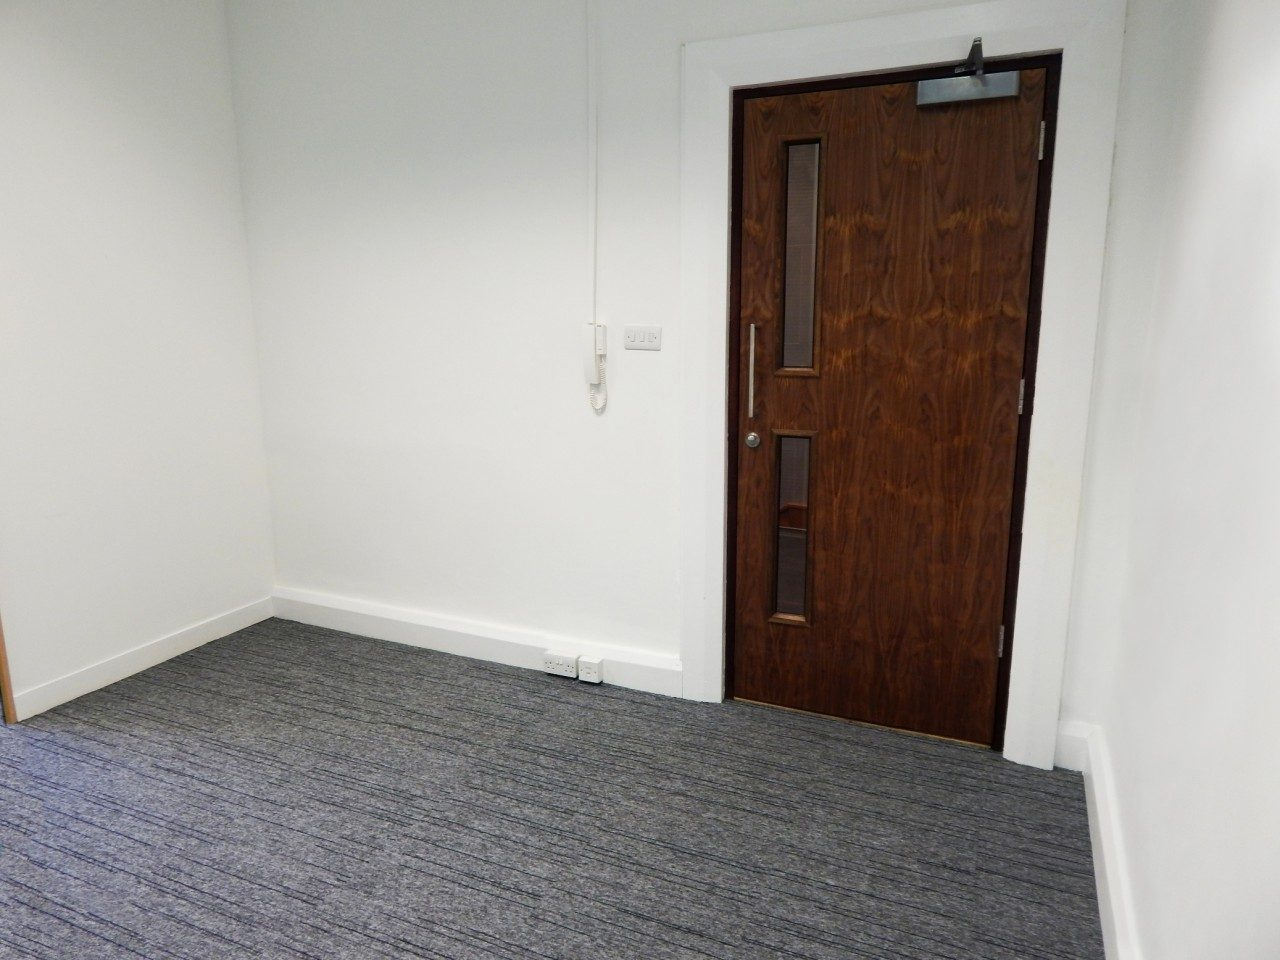 Office Space To Rent In Leeds City Centre The Online